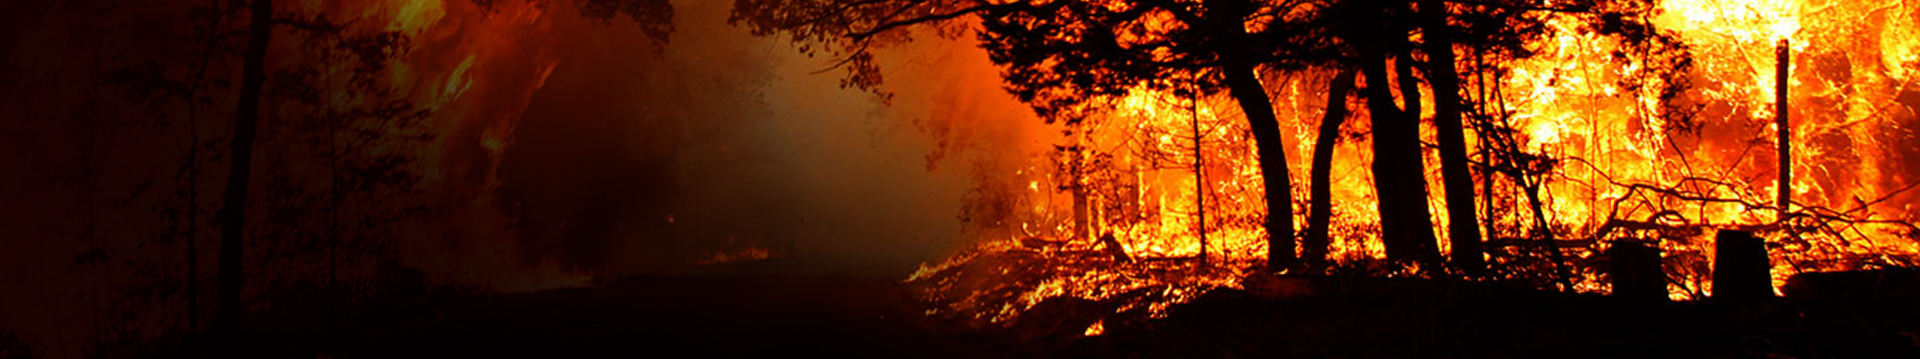 Record Wildfires, Unprecedented Public Works Response